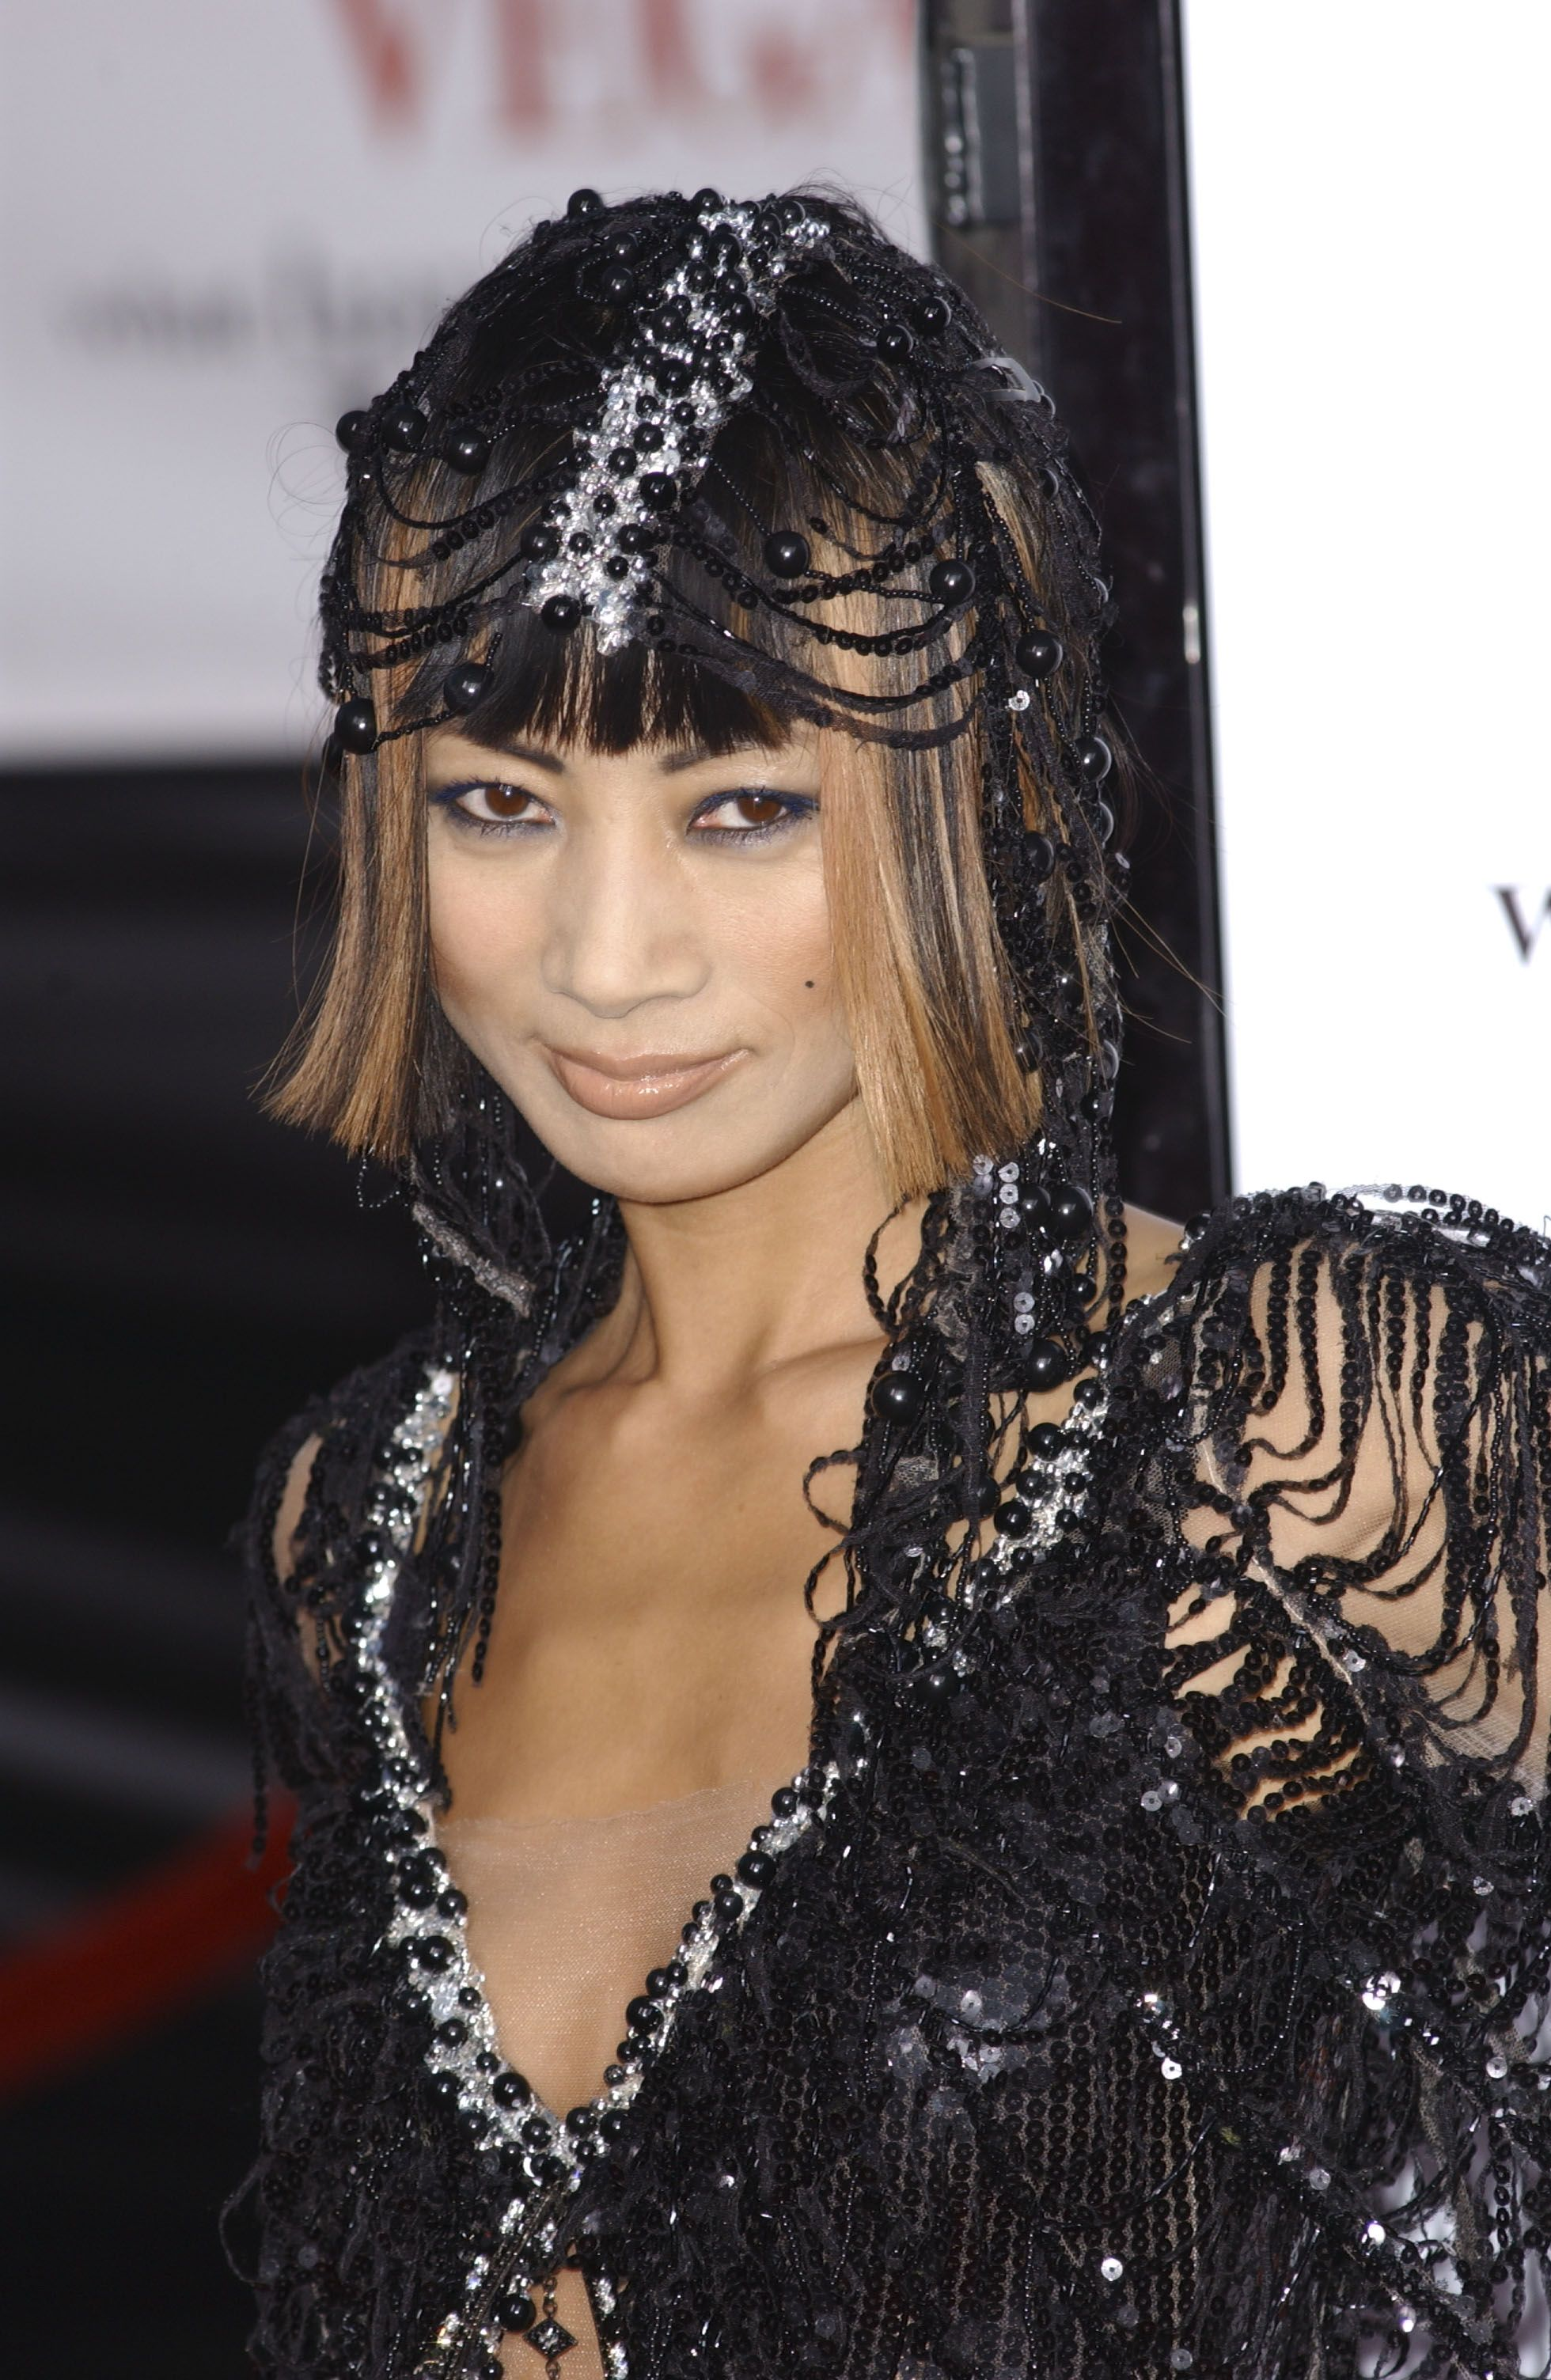 Bai Ling Photo 71 Of 273 Pics, Wallpaper